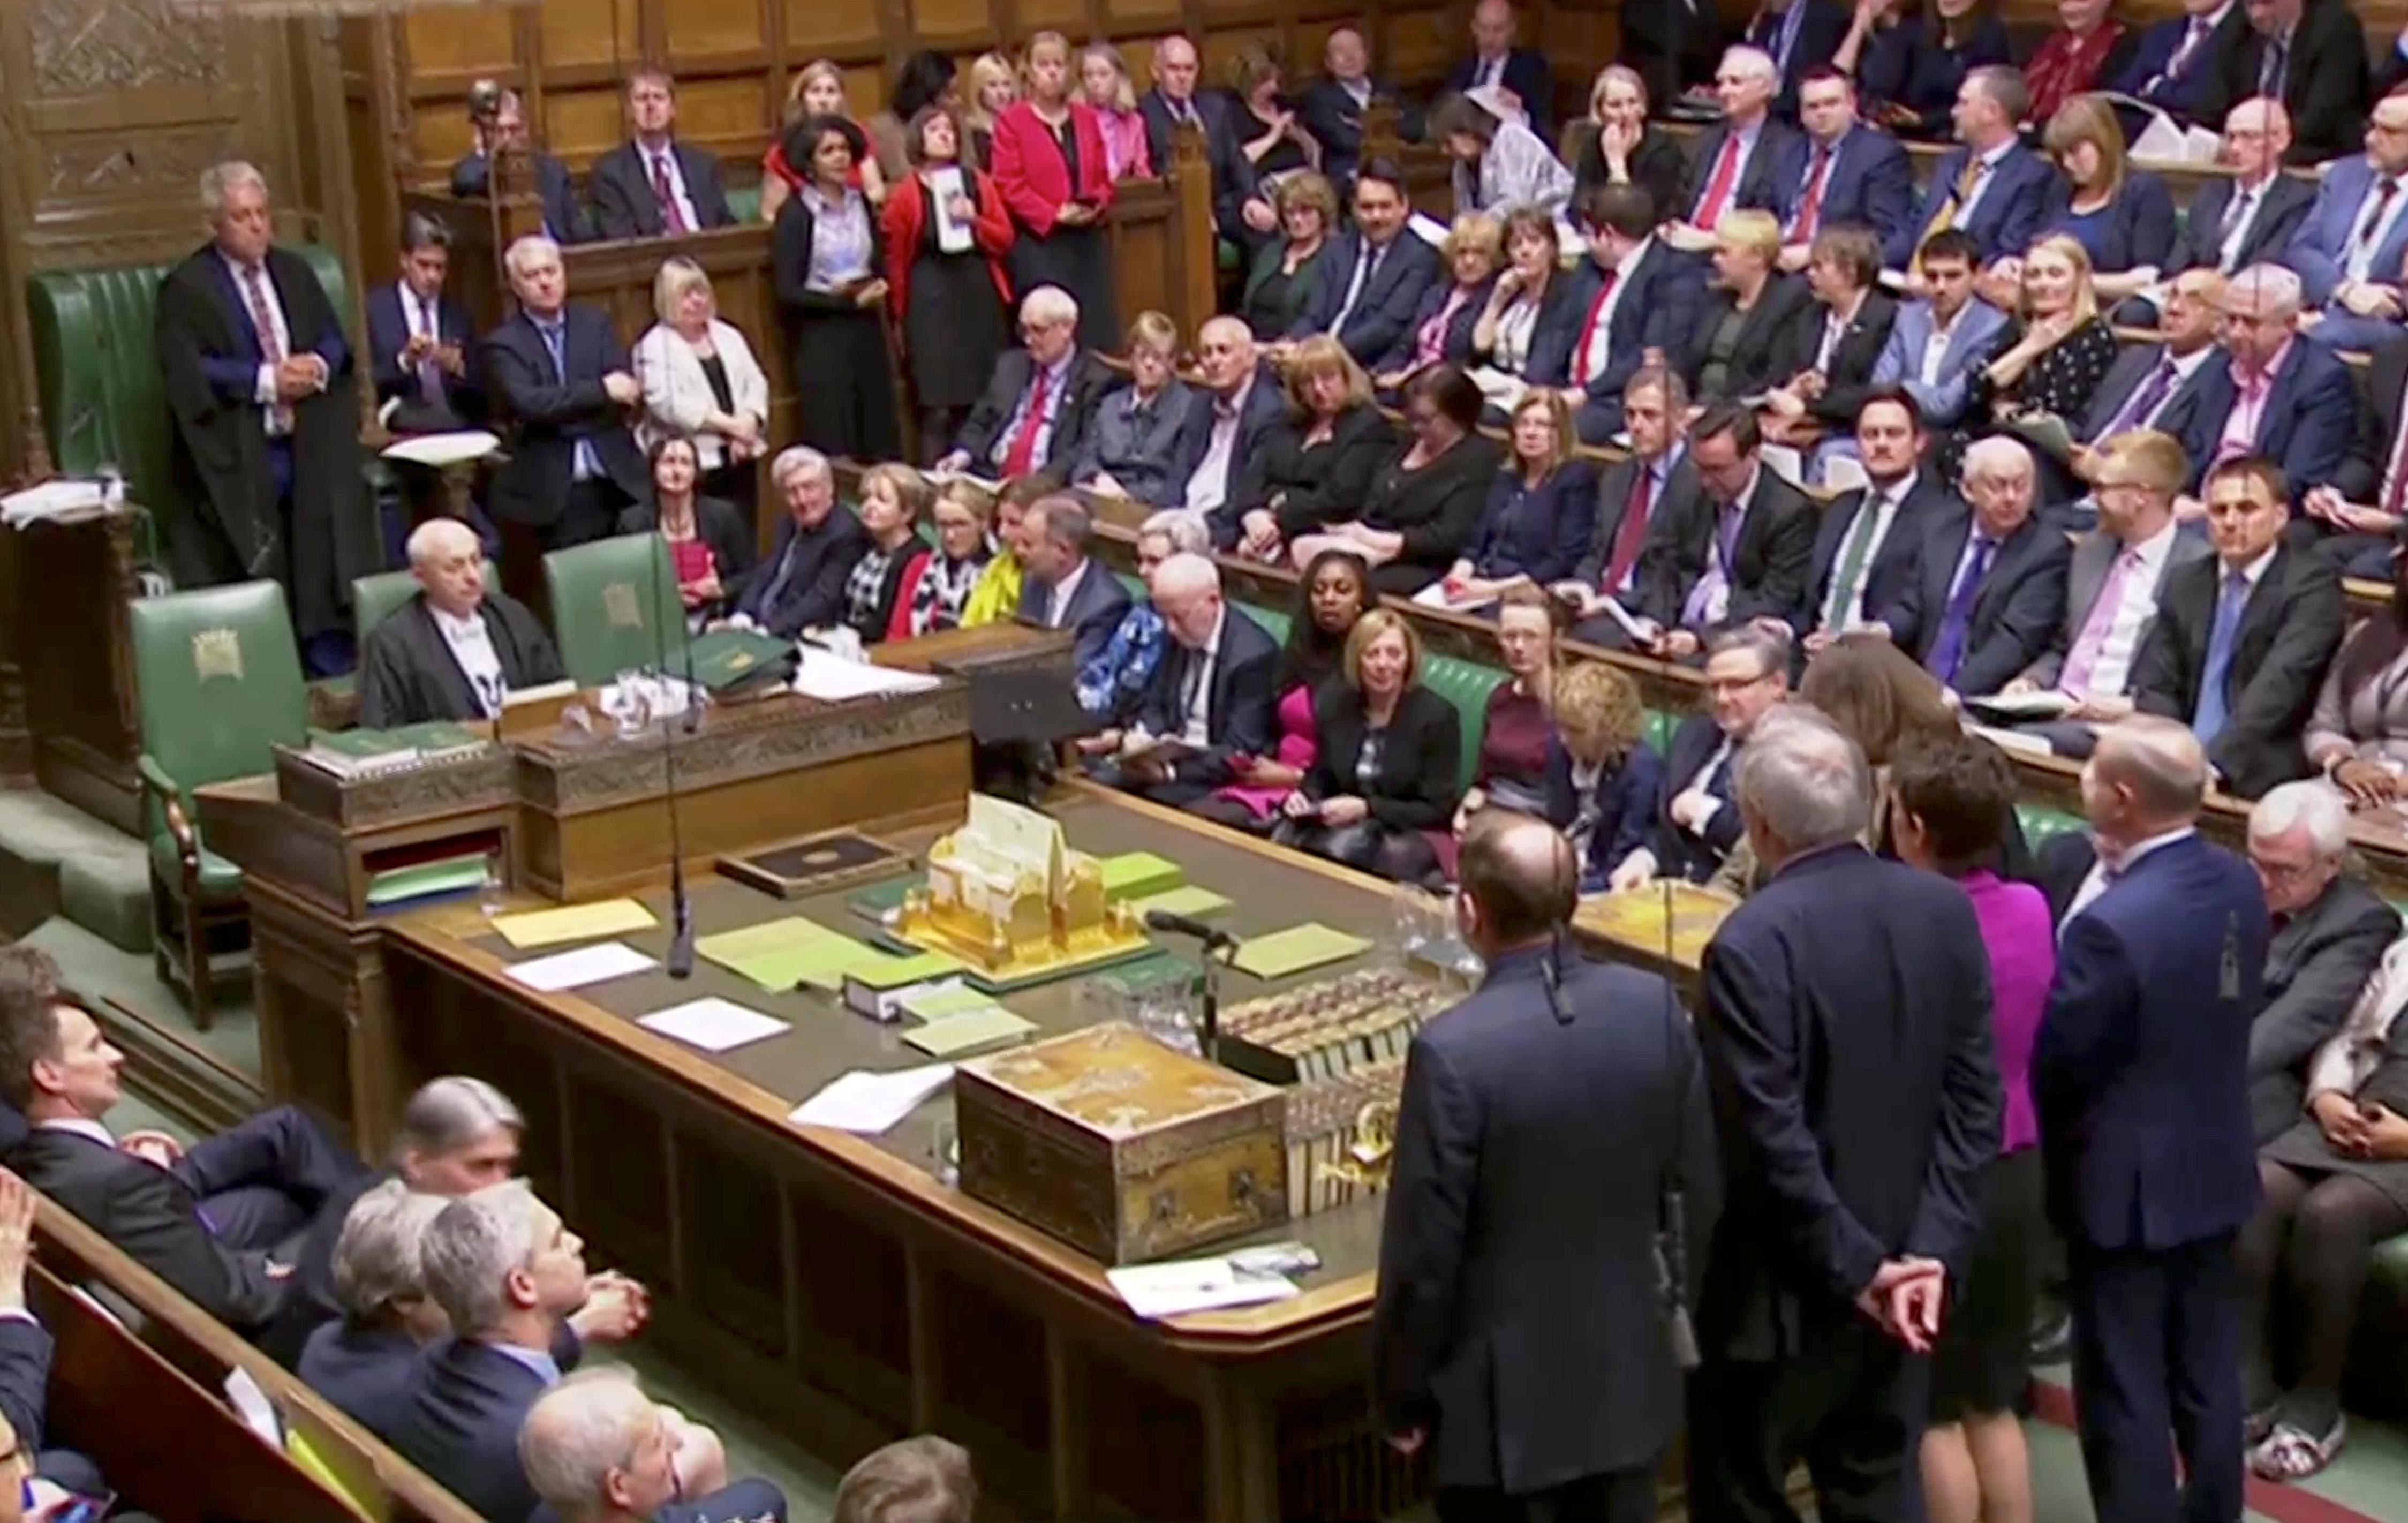 Factbox: Brexit just a few preference over again - How will UK parliament's indicative votes work?